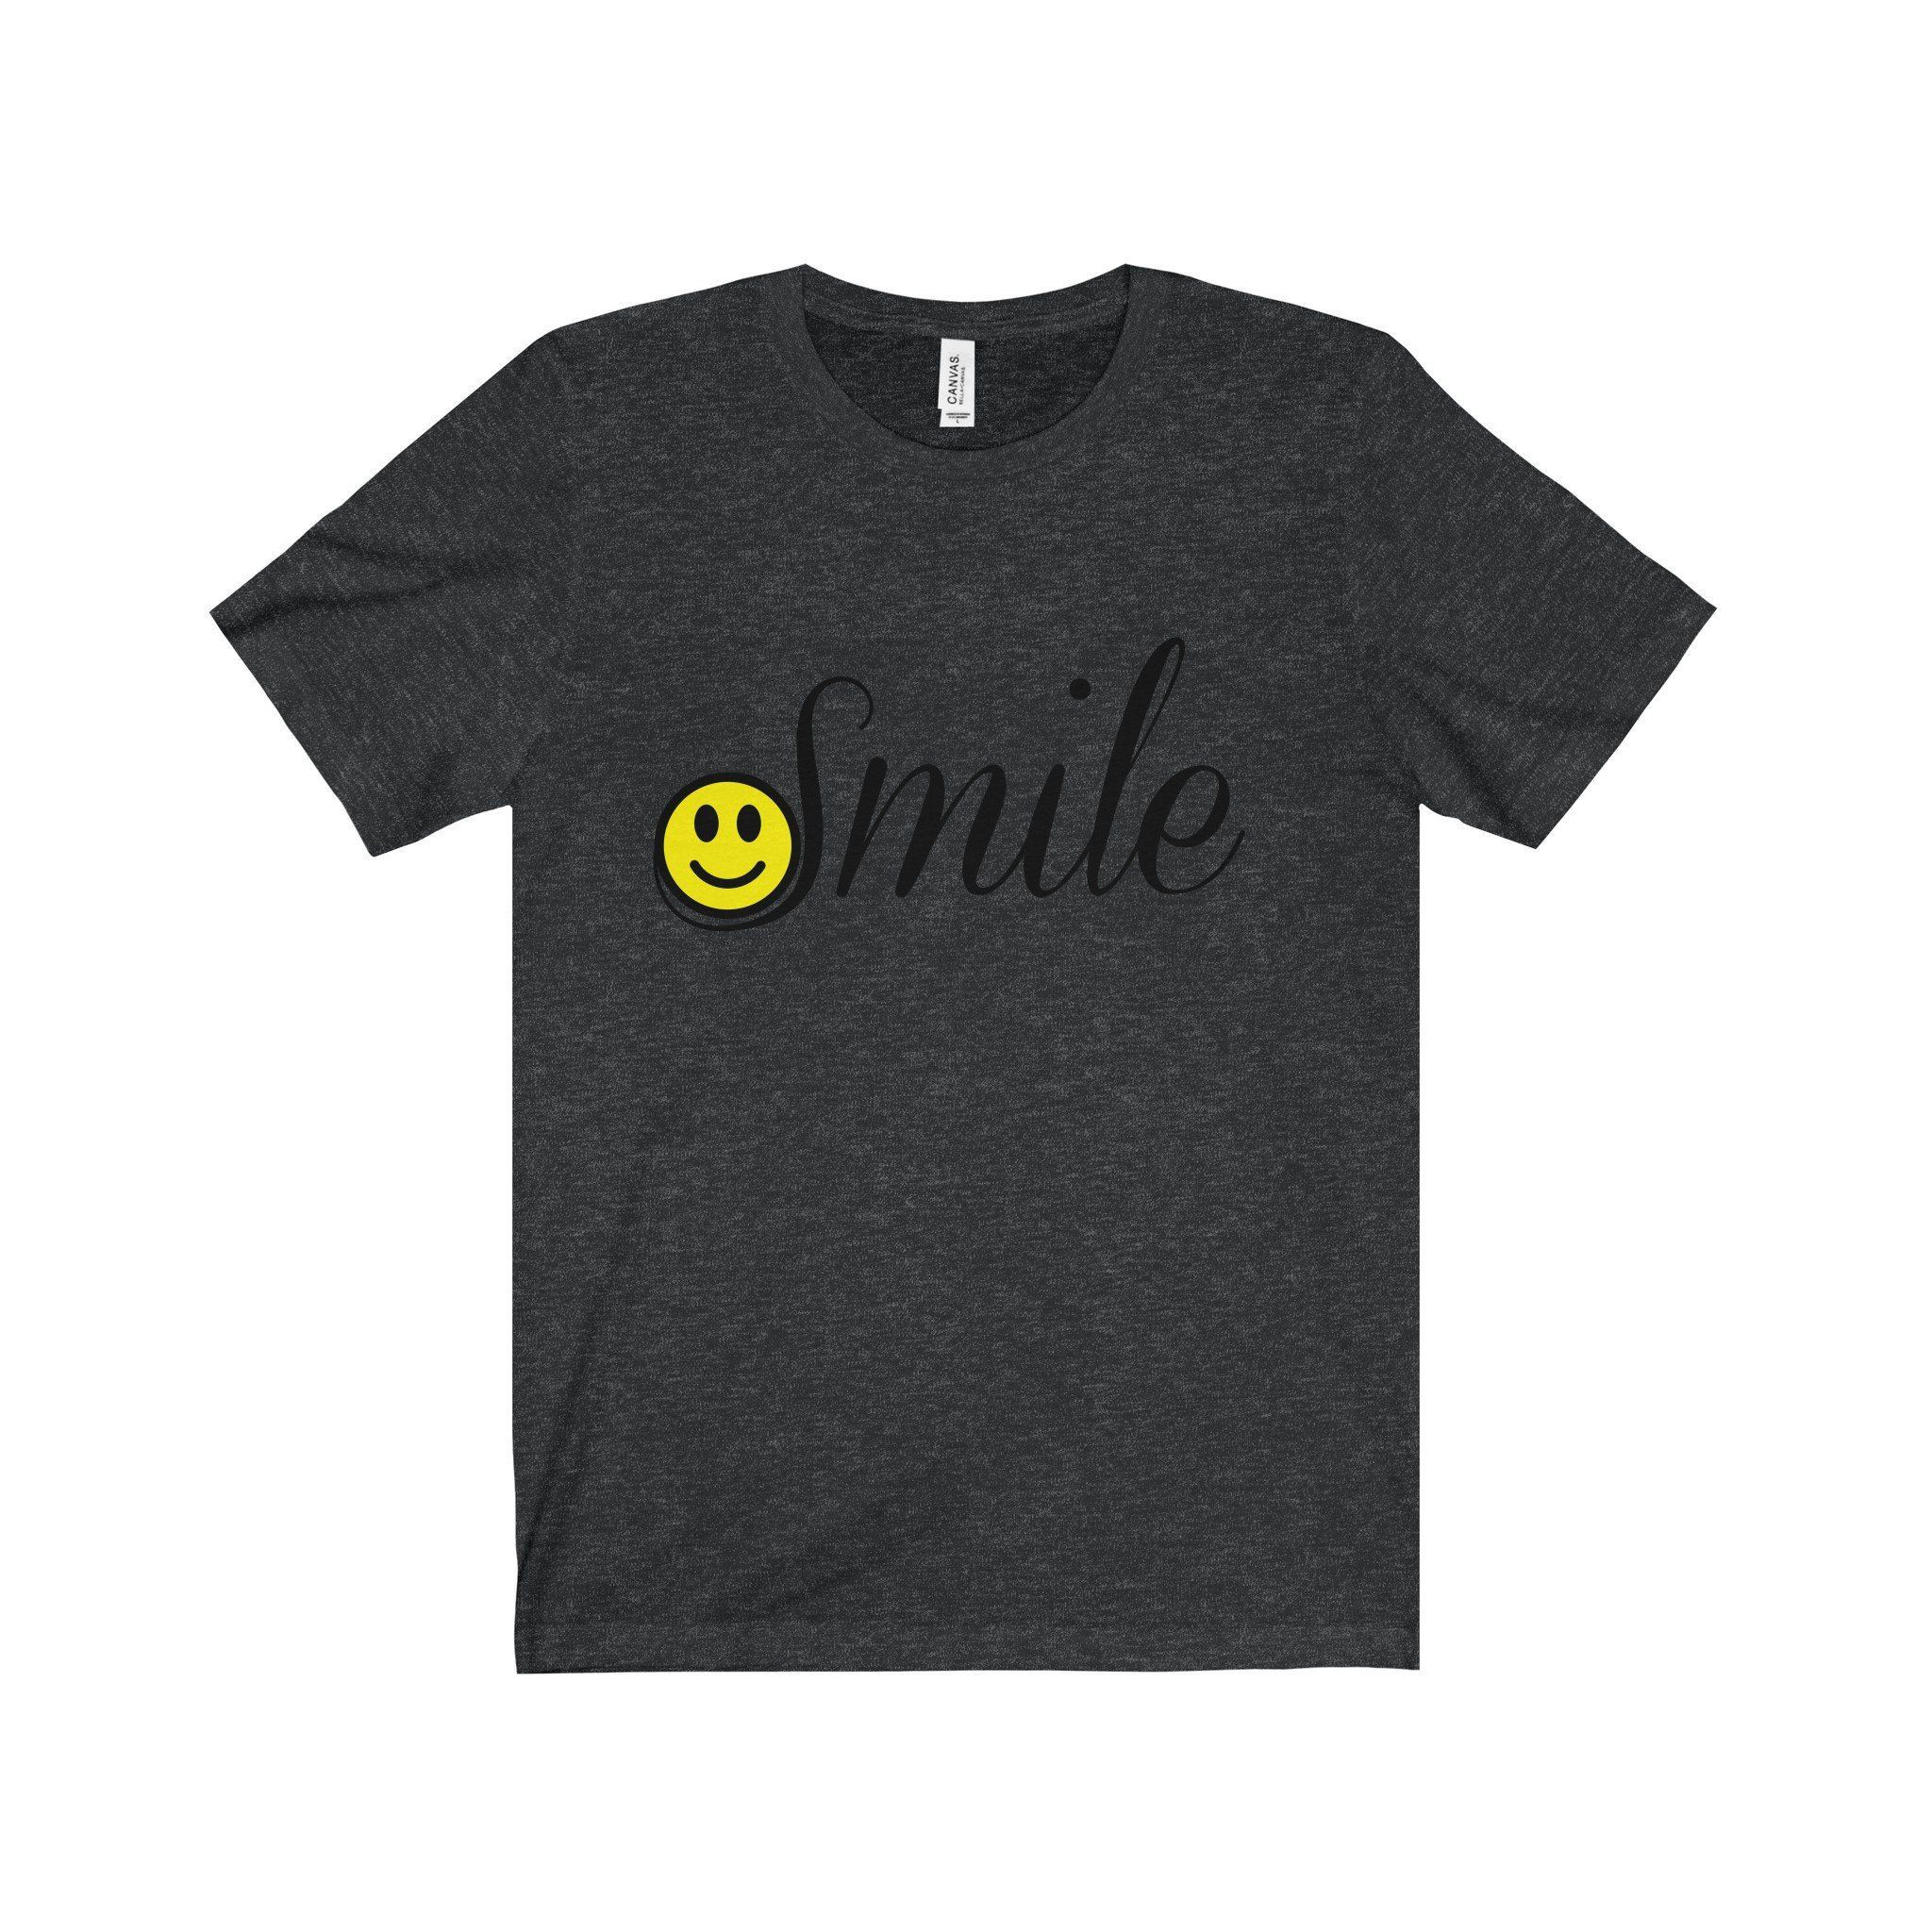 smiley face vase of smile happy face black letter tee 7 colors available pinterest with regard to every single opportunity you get smile it helps brighten the world this t shirt features a yellow smiley face on the s in the word smile usually